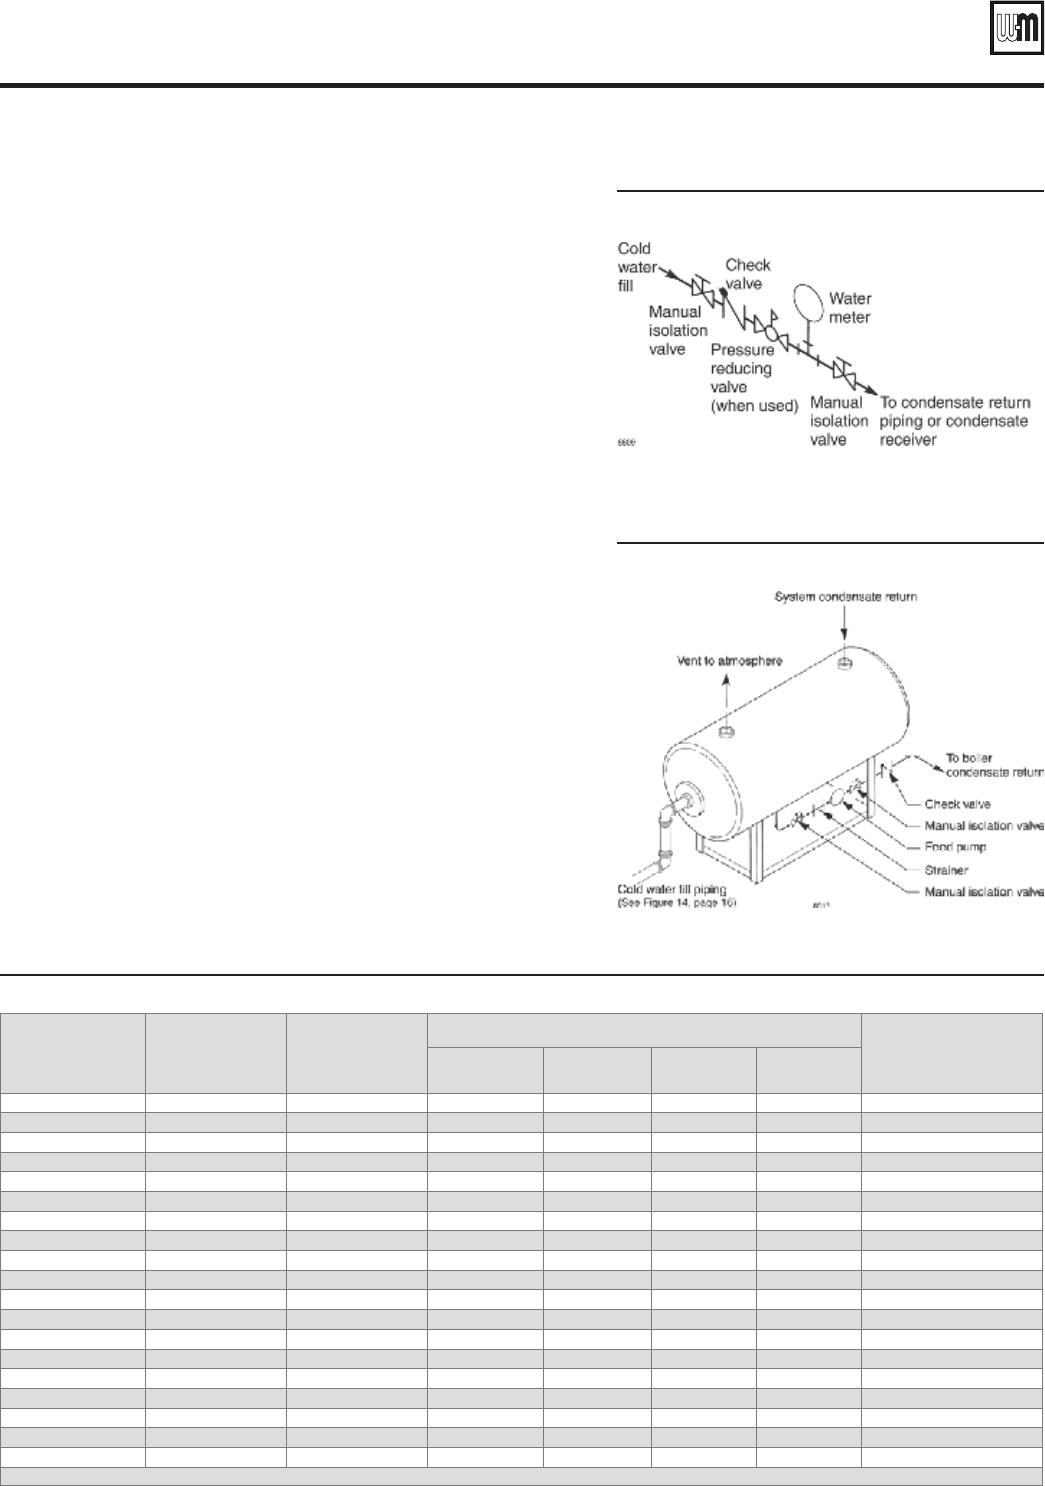 Weil Mclain 88 Connect Steam Boiler Piping Schematic Diagram